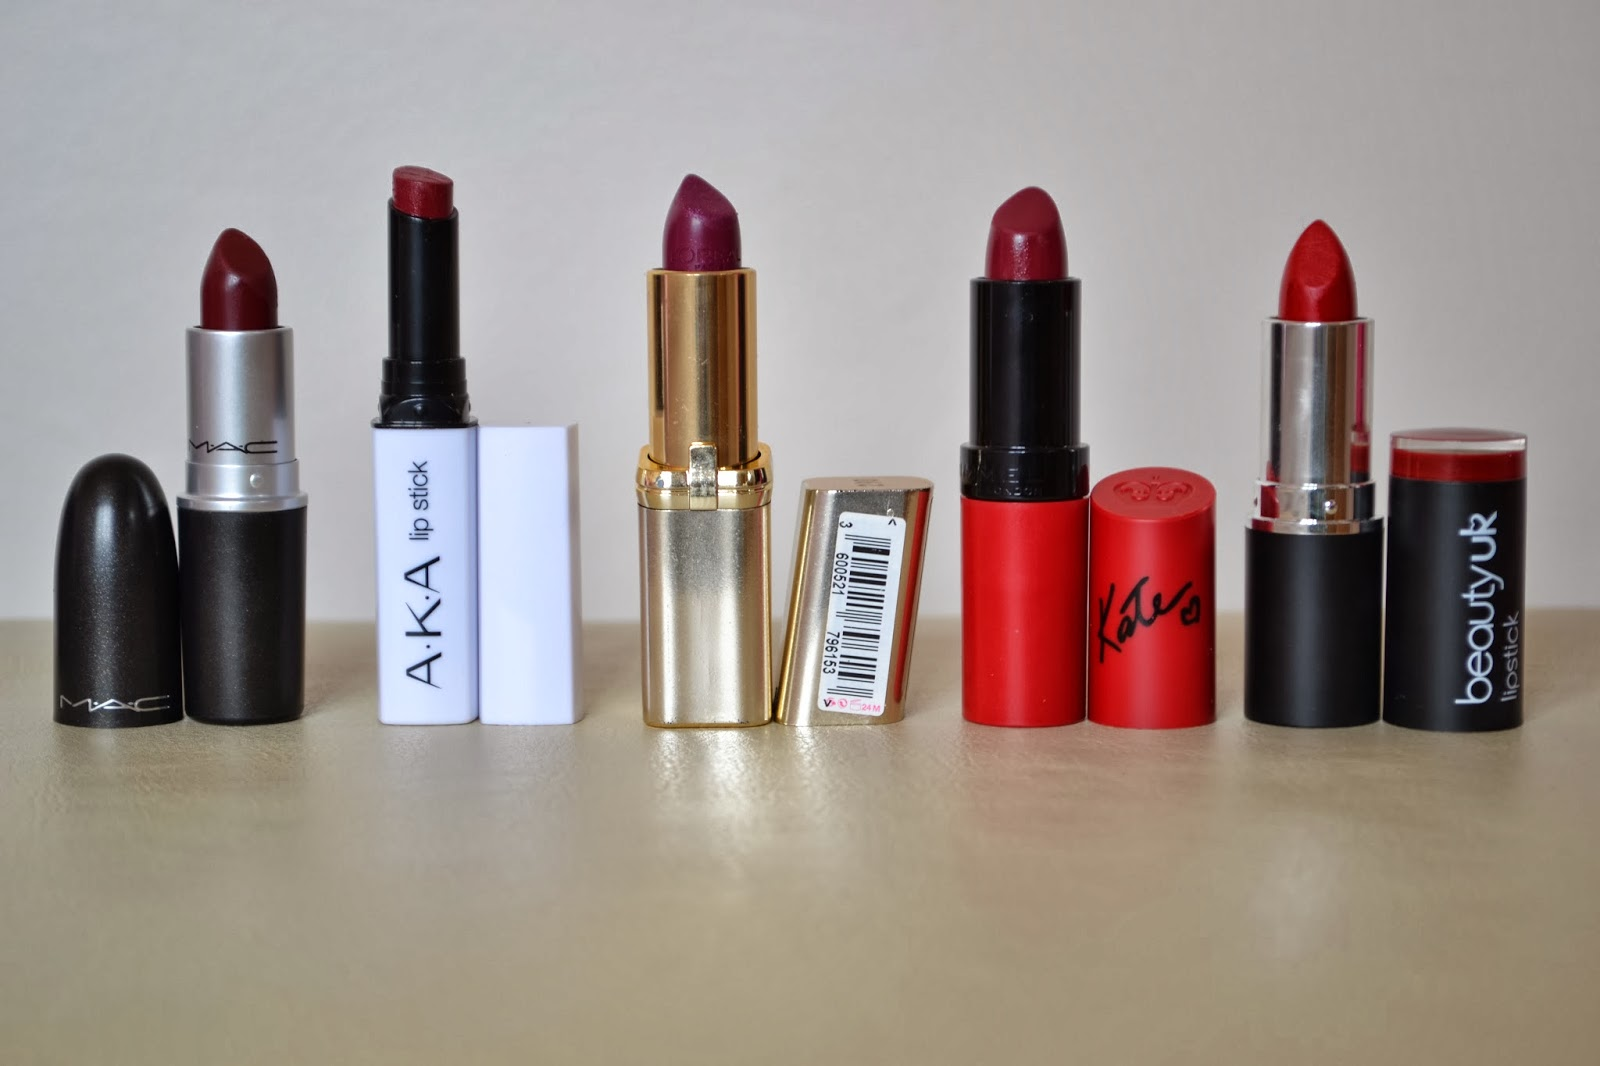 Beauty Waterfall: Top 5 Autumn Lipsticks